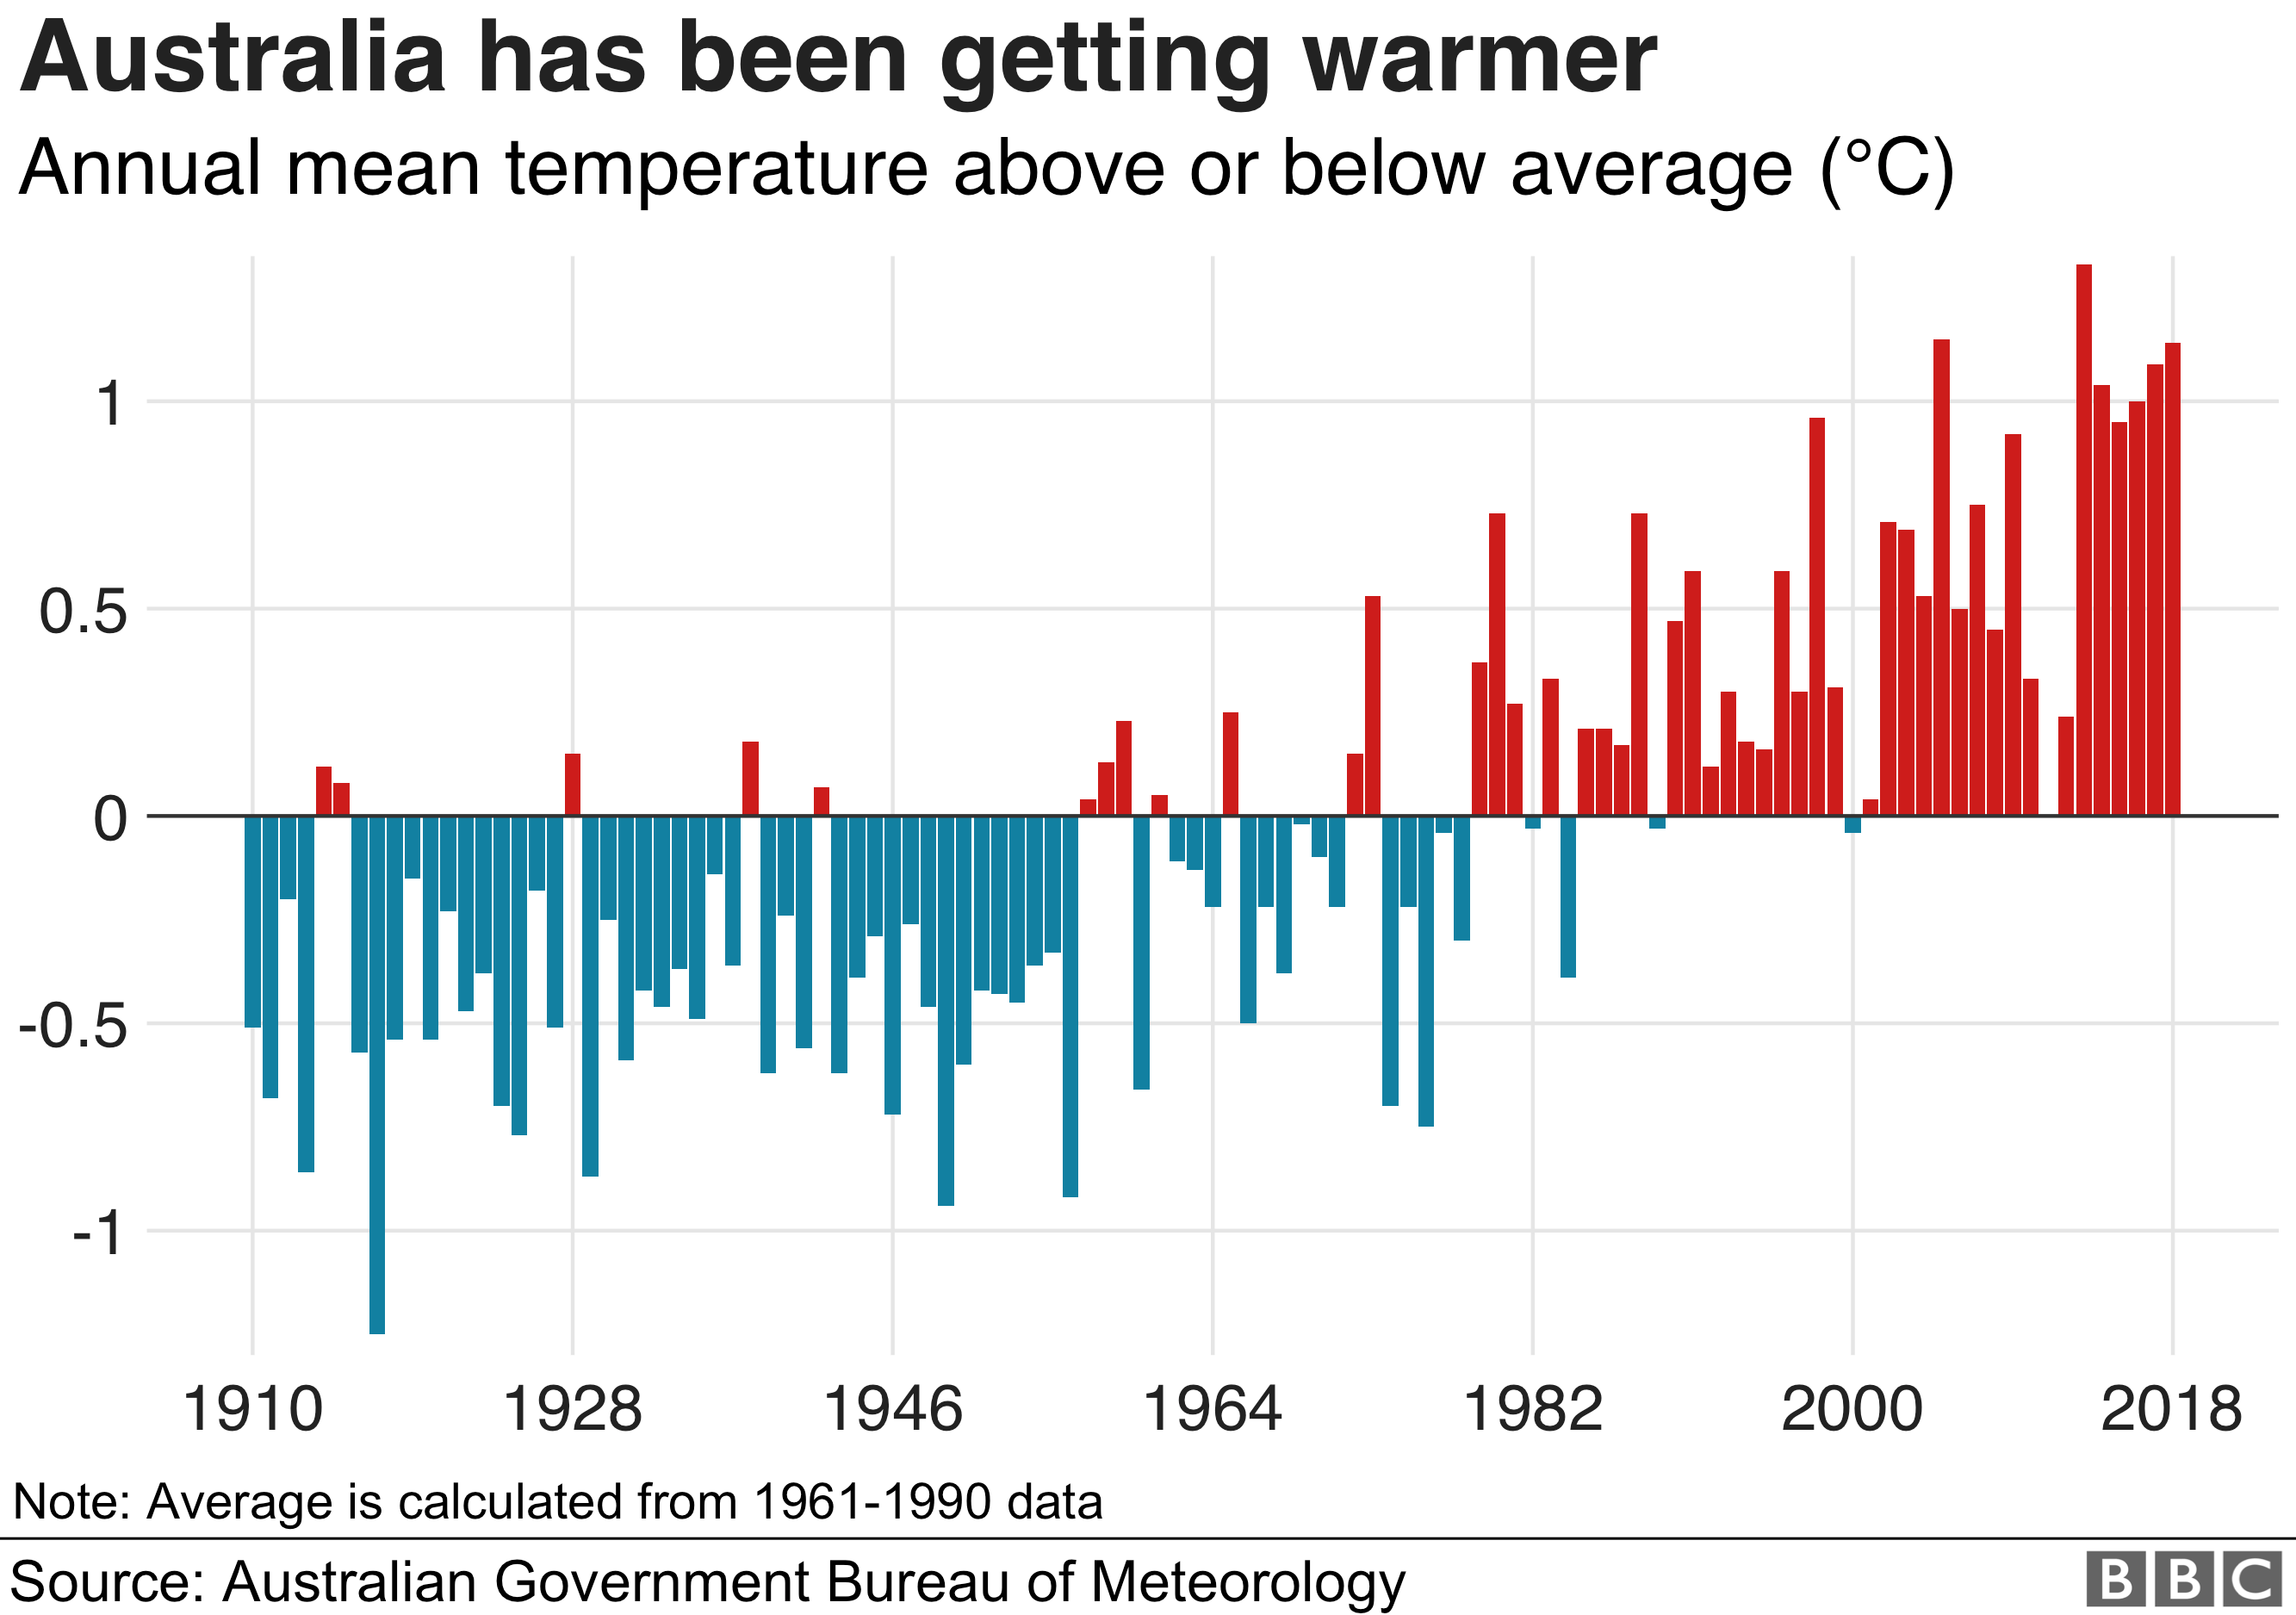 Chart showing how Australia has been getting warmer in recent decades